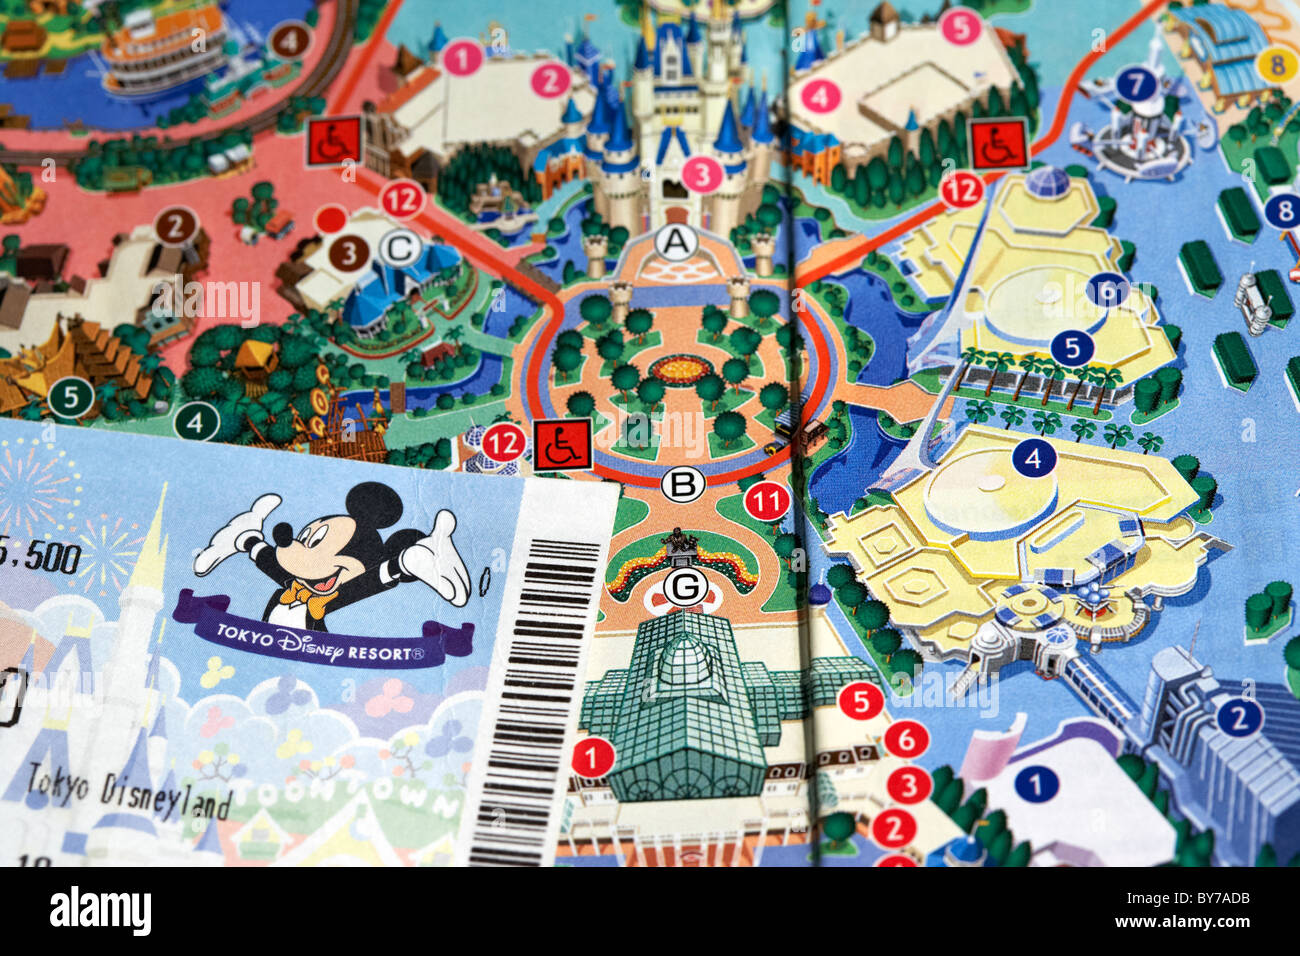 Tickets and map to tokyo disney resort disneyland tourist tickets and map to tokyo disney resort disneyland tourist attractions in tokyo japan gumiabroncs